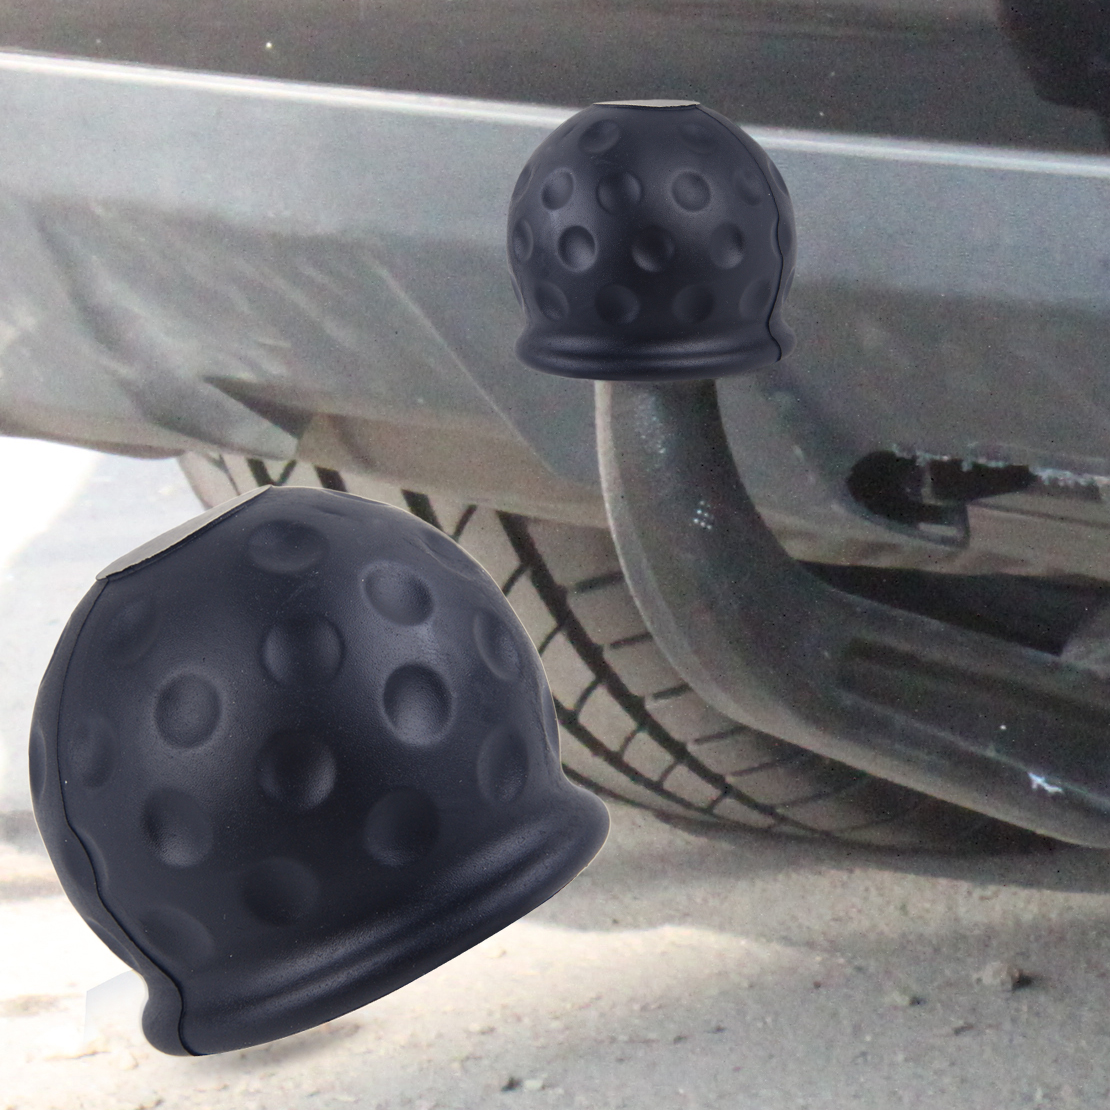 CITALL Car Rubber Black 50mm Tow Ball Towball Protector Cover Cap Hitch Caravan Trailer ...